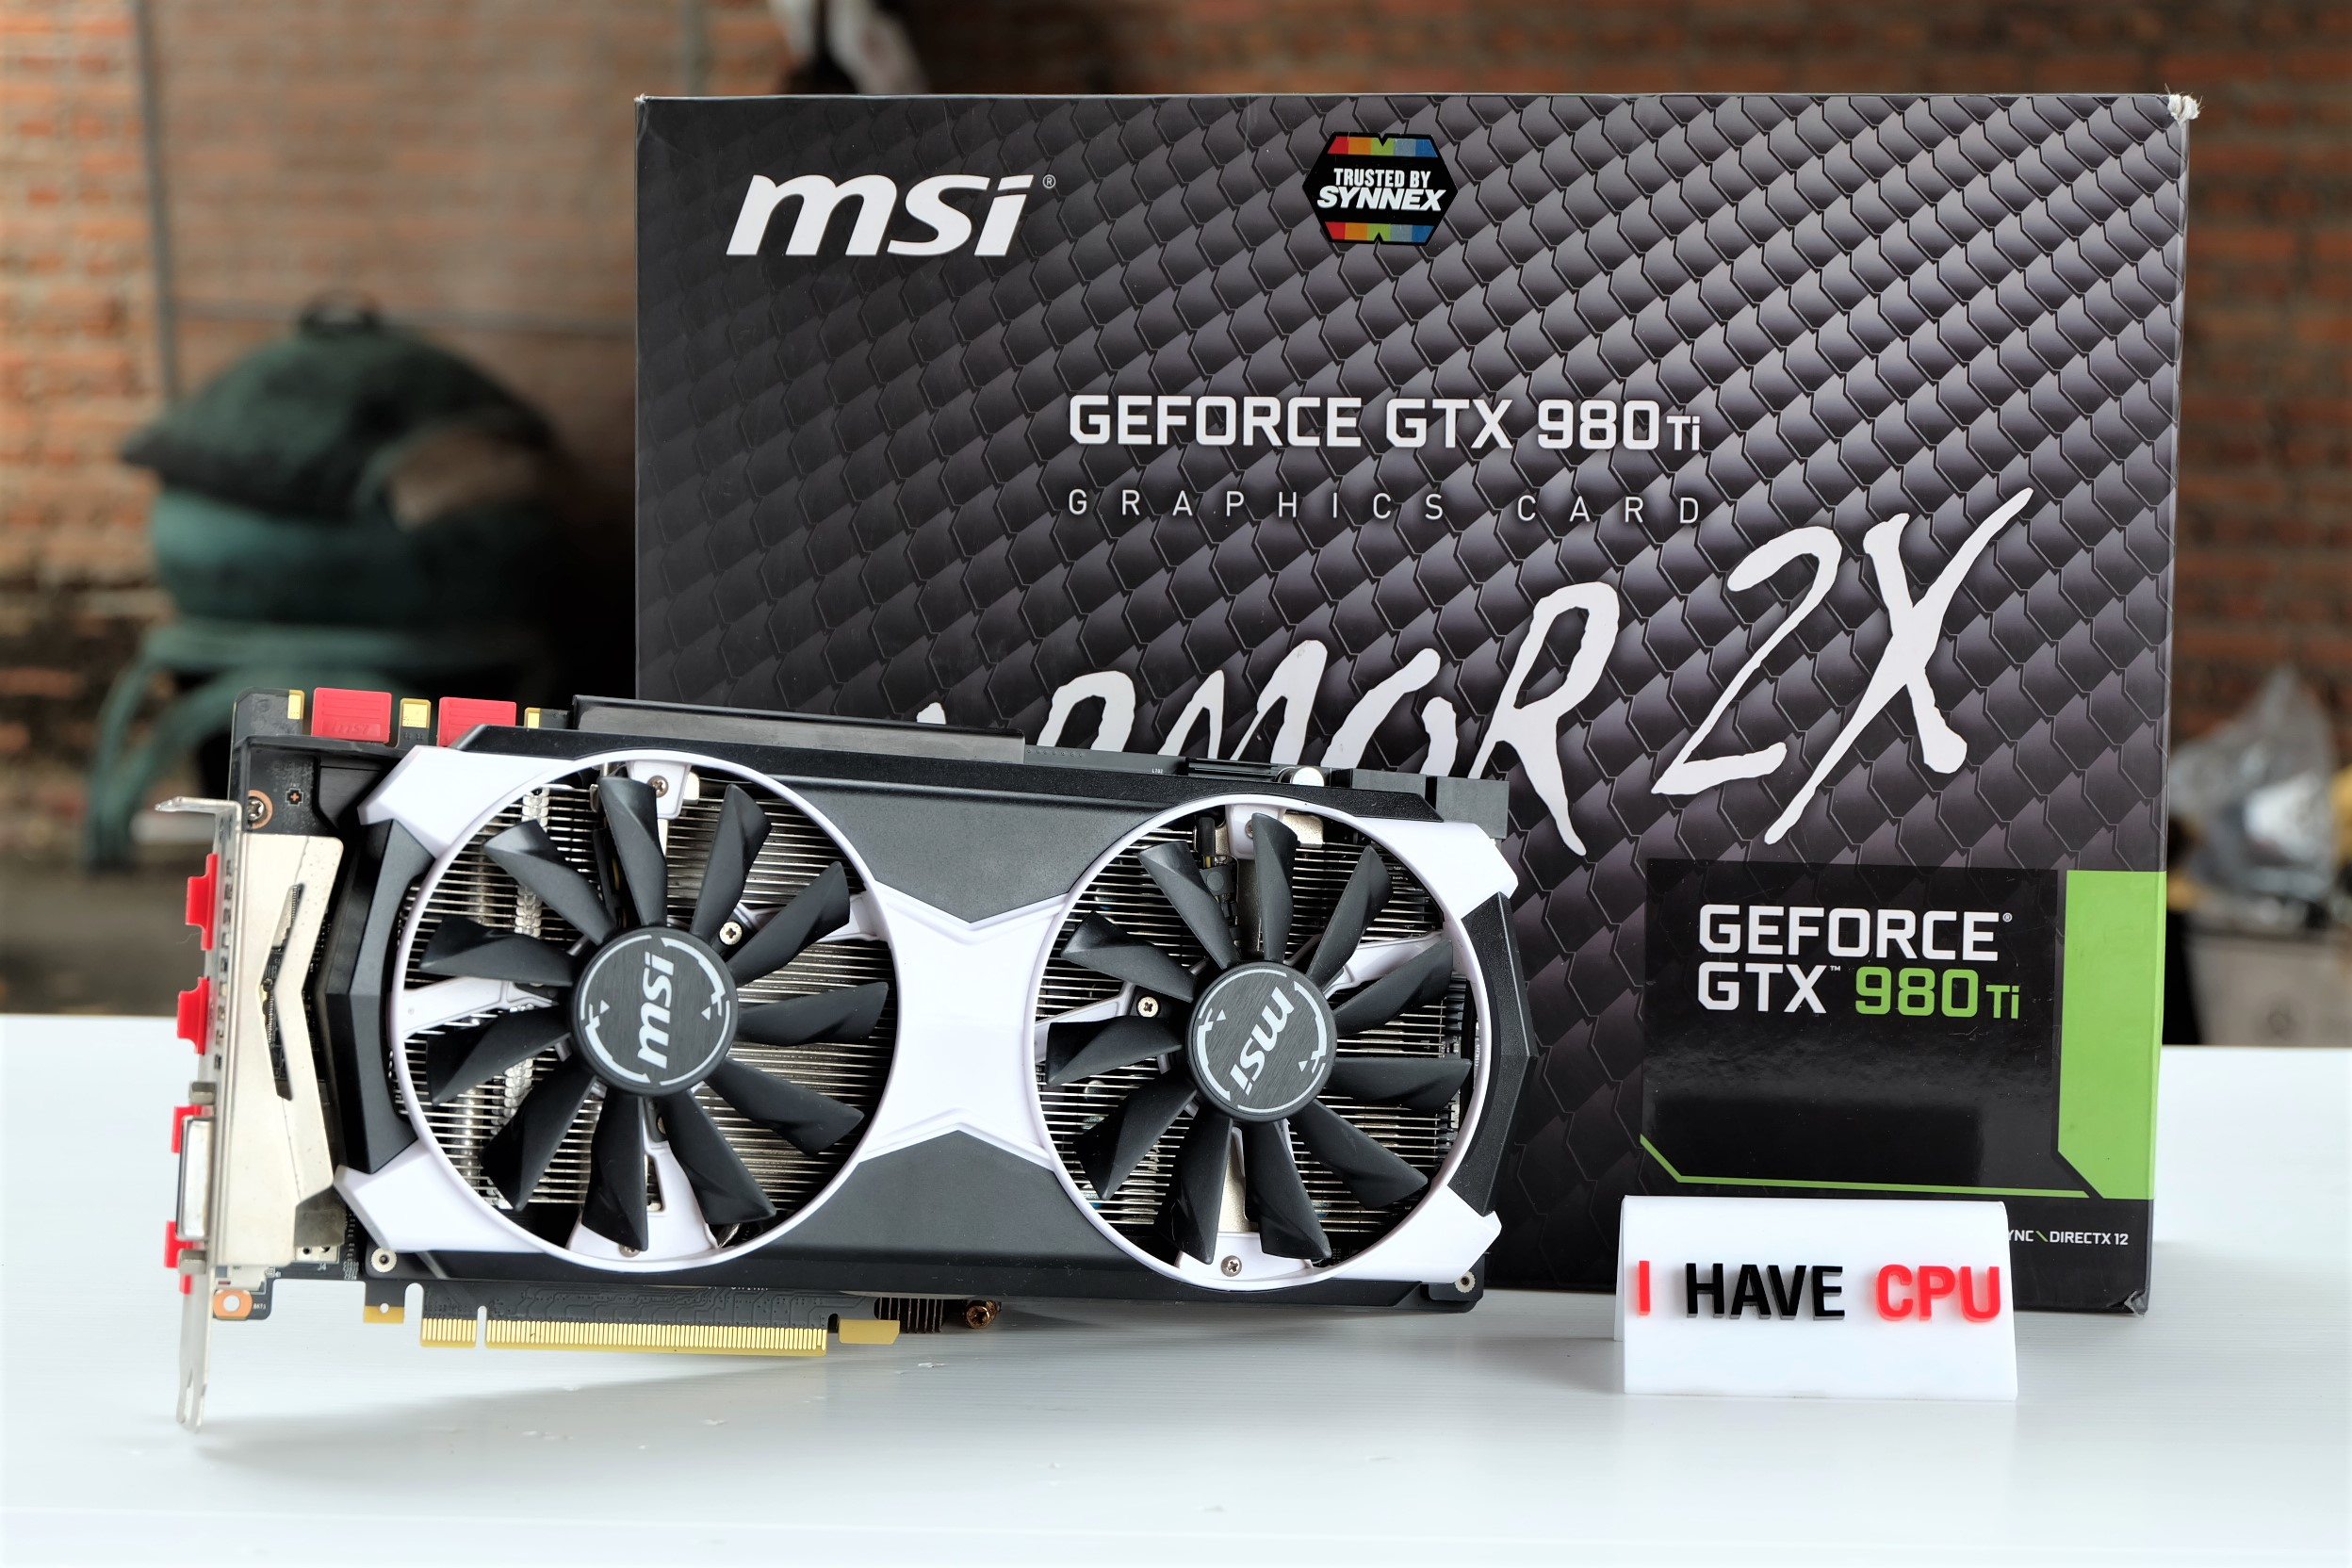 MSI GeForce GTX 980 TI 980ti Armor 2x OC 6gb